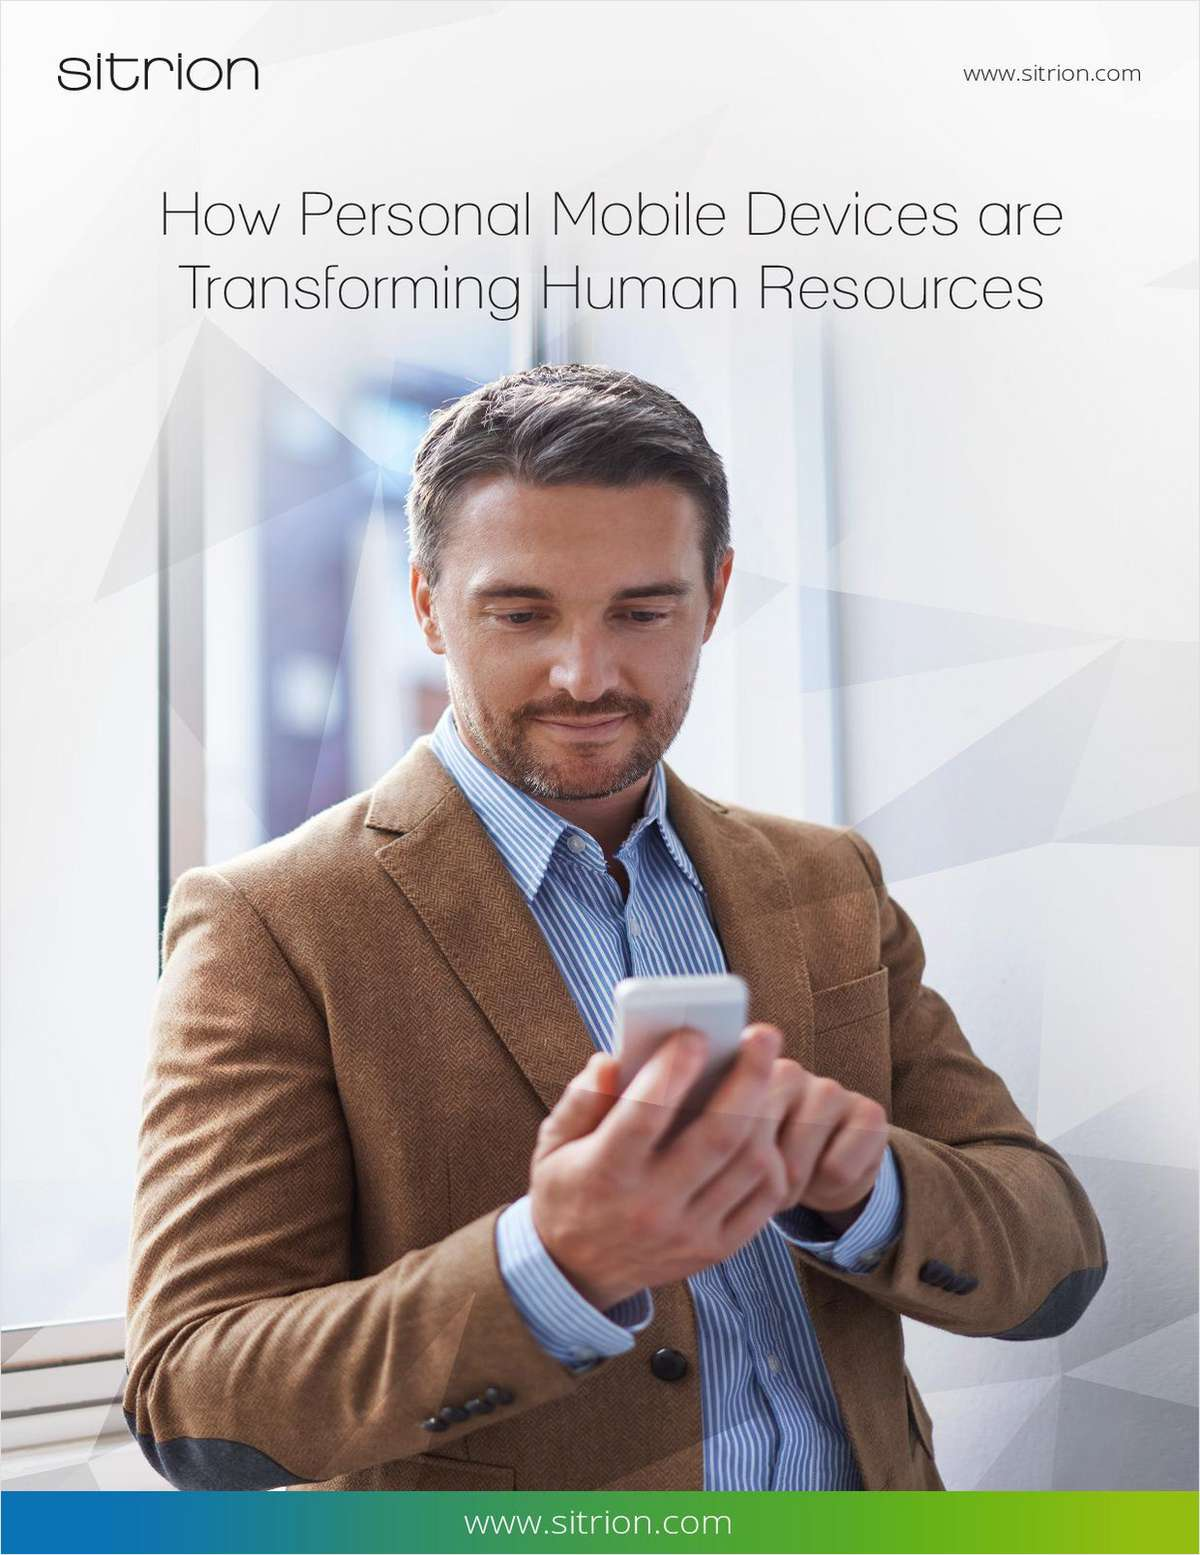 How Mobile Devices Are Transforming Human Resources